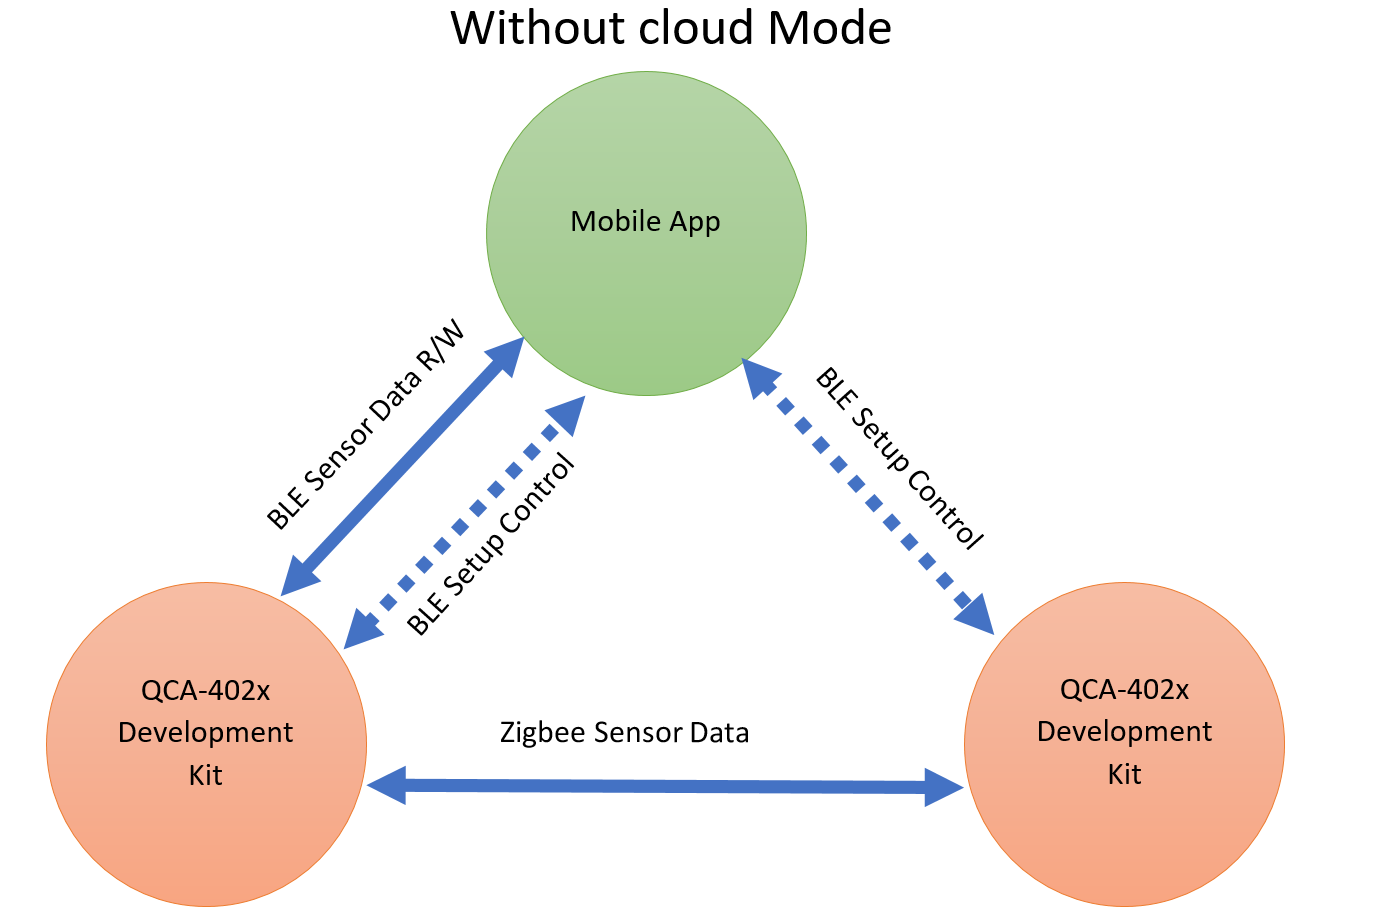 Onboard demo without cloud mode on QCA4020 Development Kit